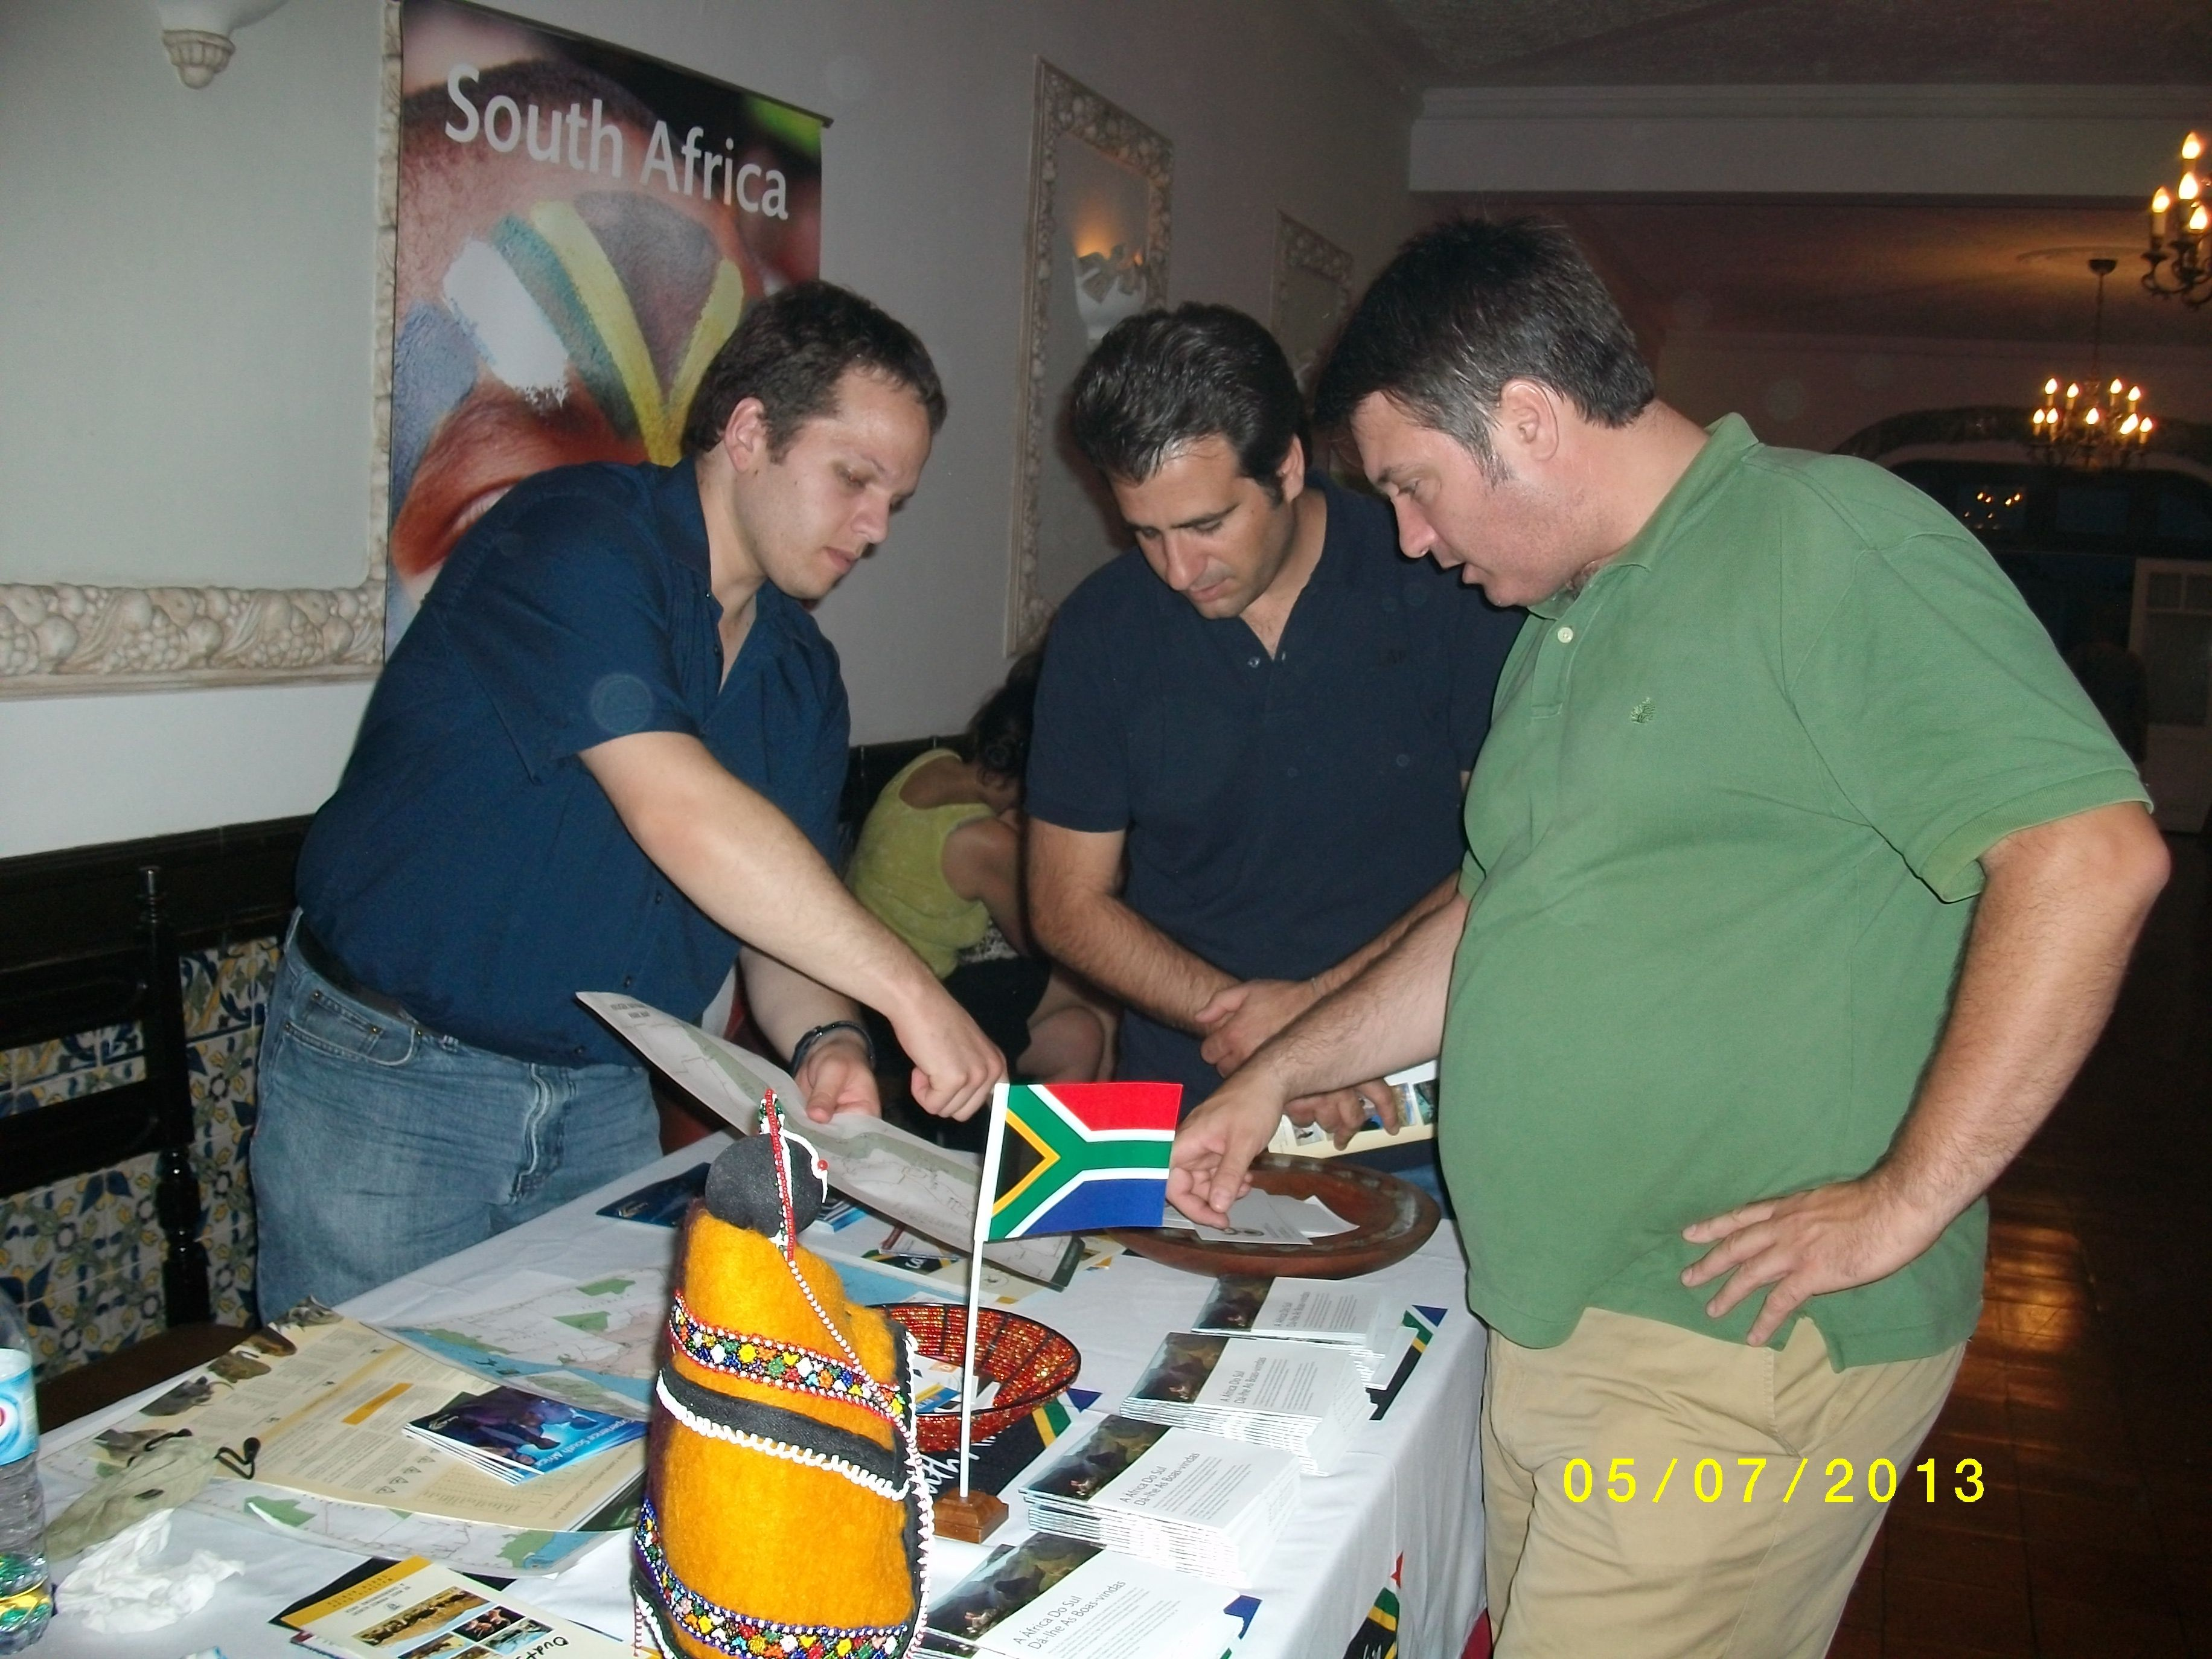 Mr R Stroebel, First Secretary interacting with the local tourism trade